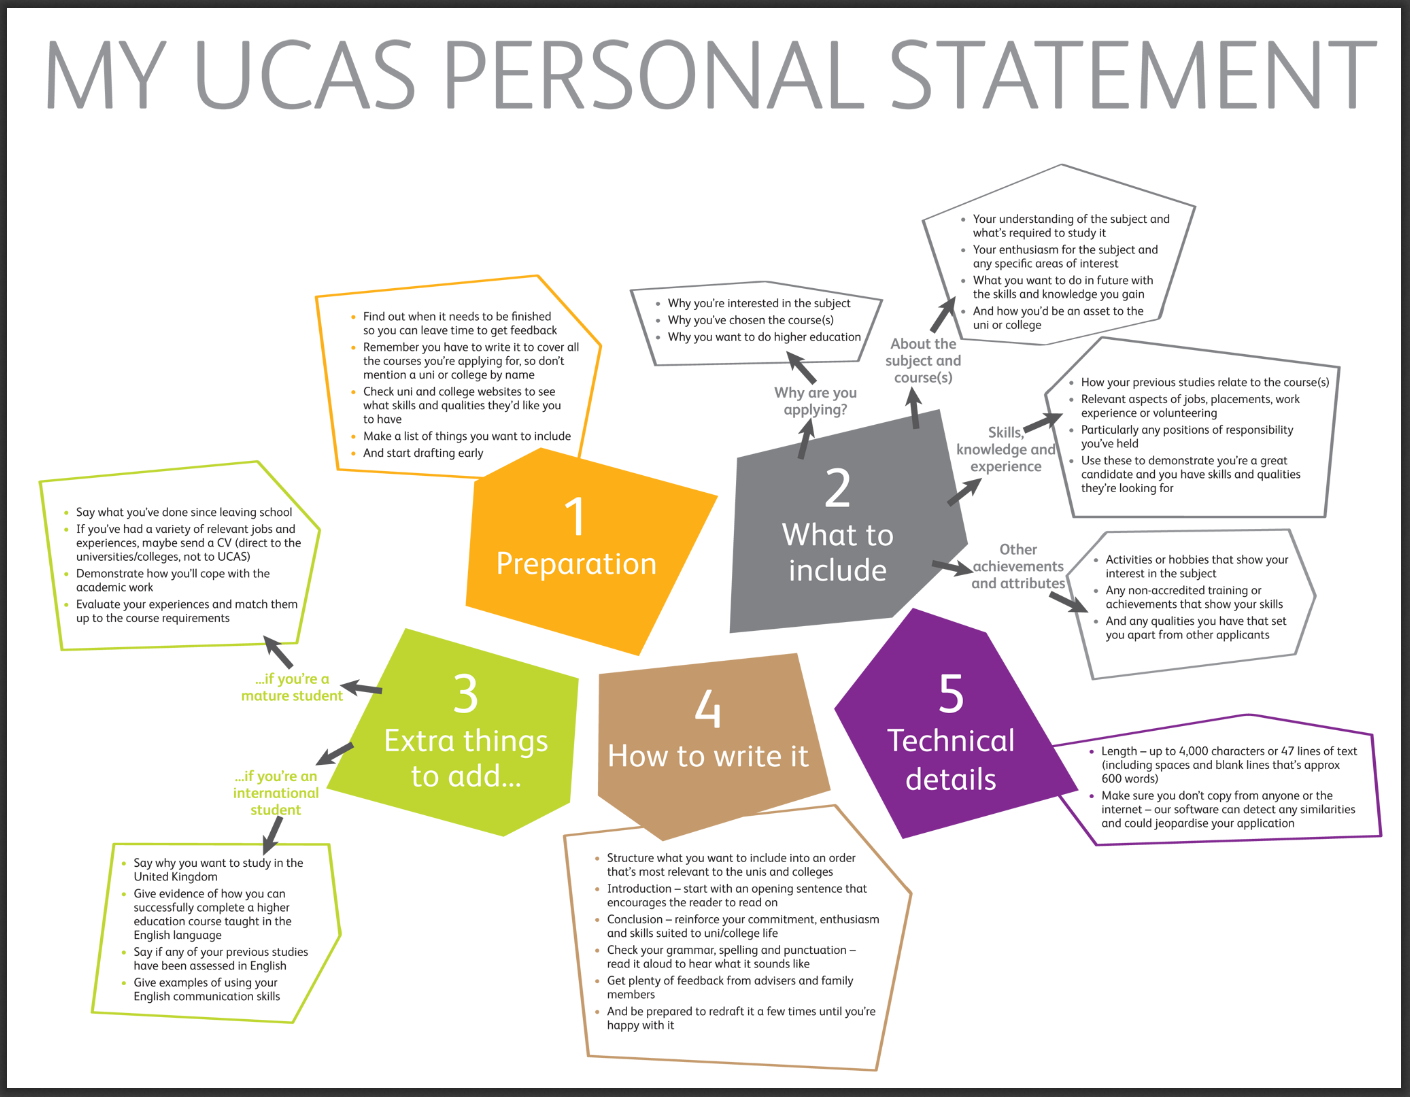 Writing a Personal Statement for UCAS (a) by iqo36530